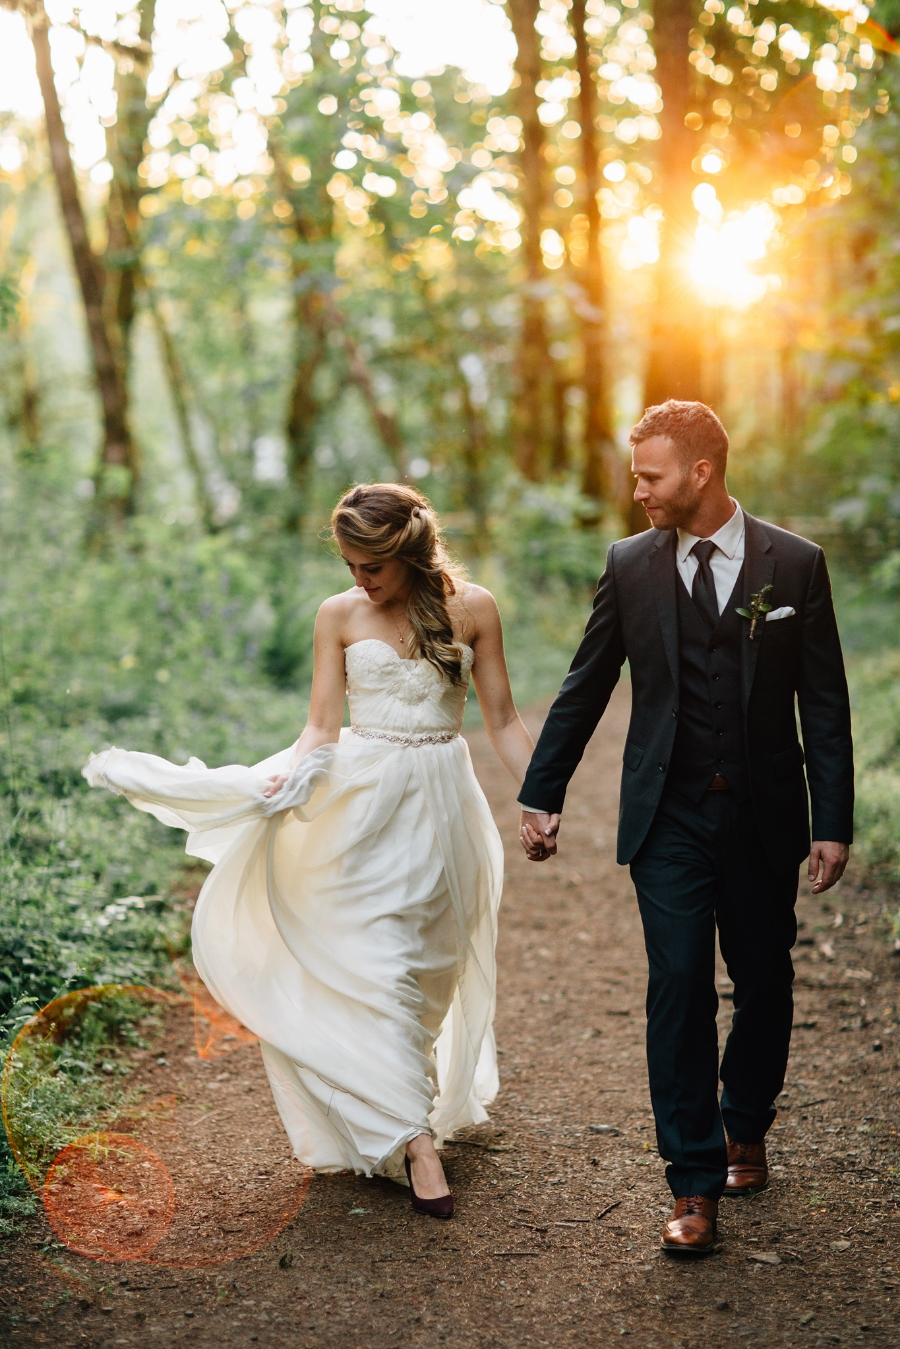 romantic bride and groom walk